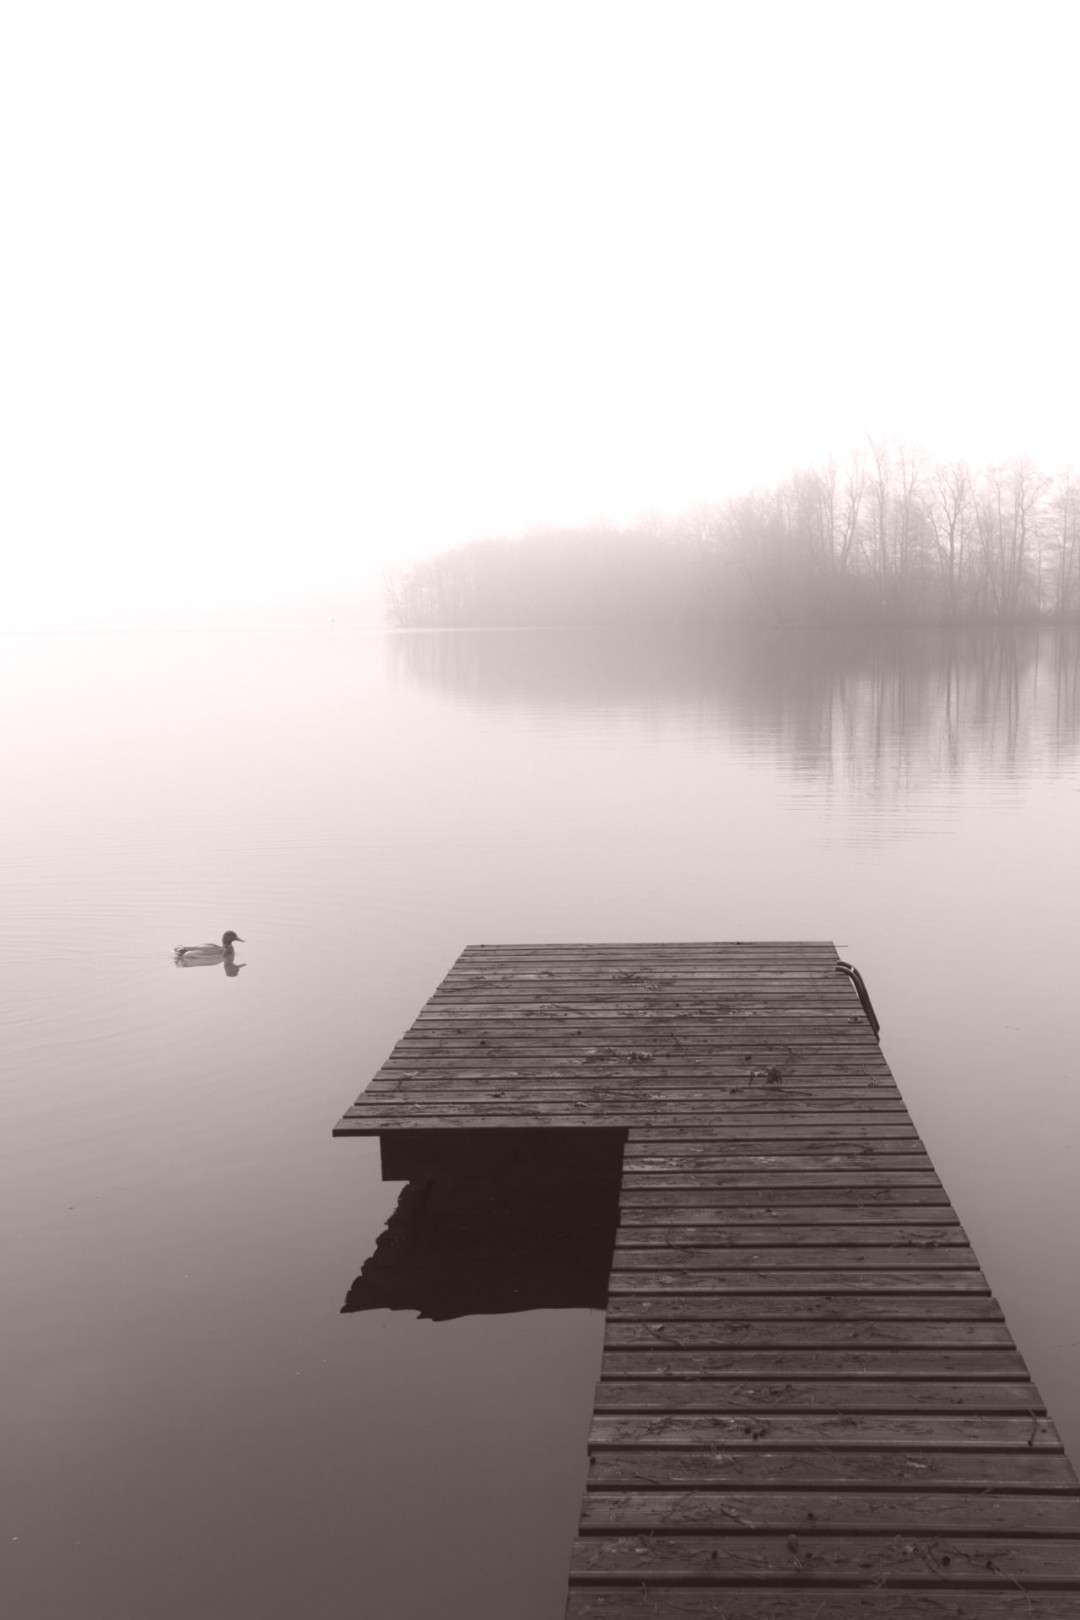 Tranquility -